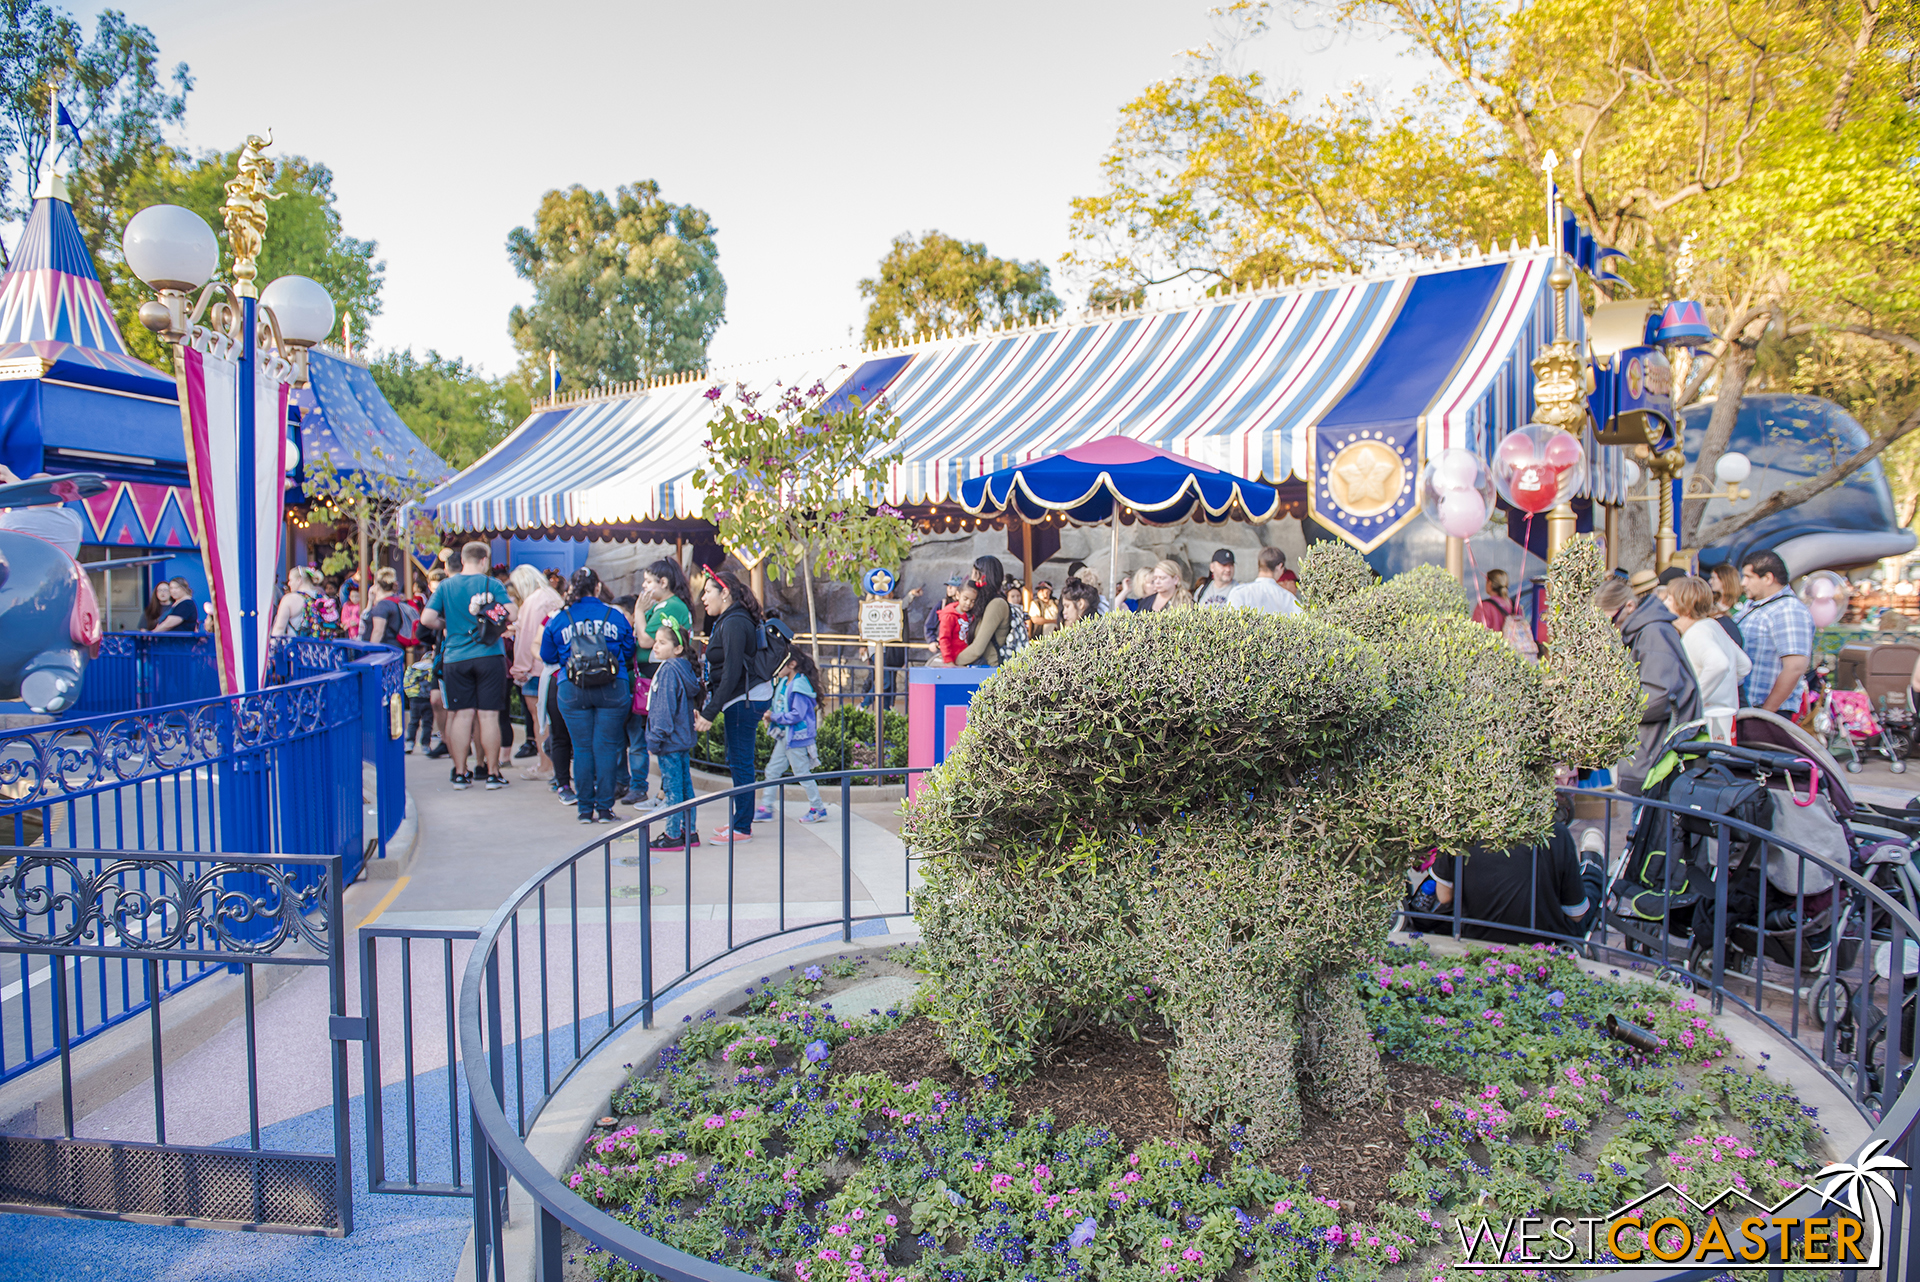 The familiar Dumbo hedge is still there.